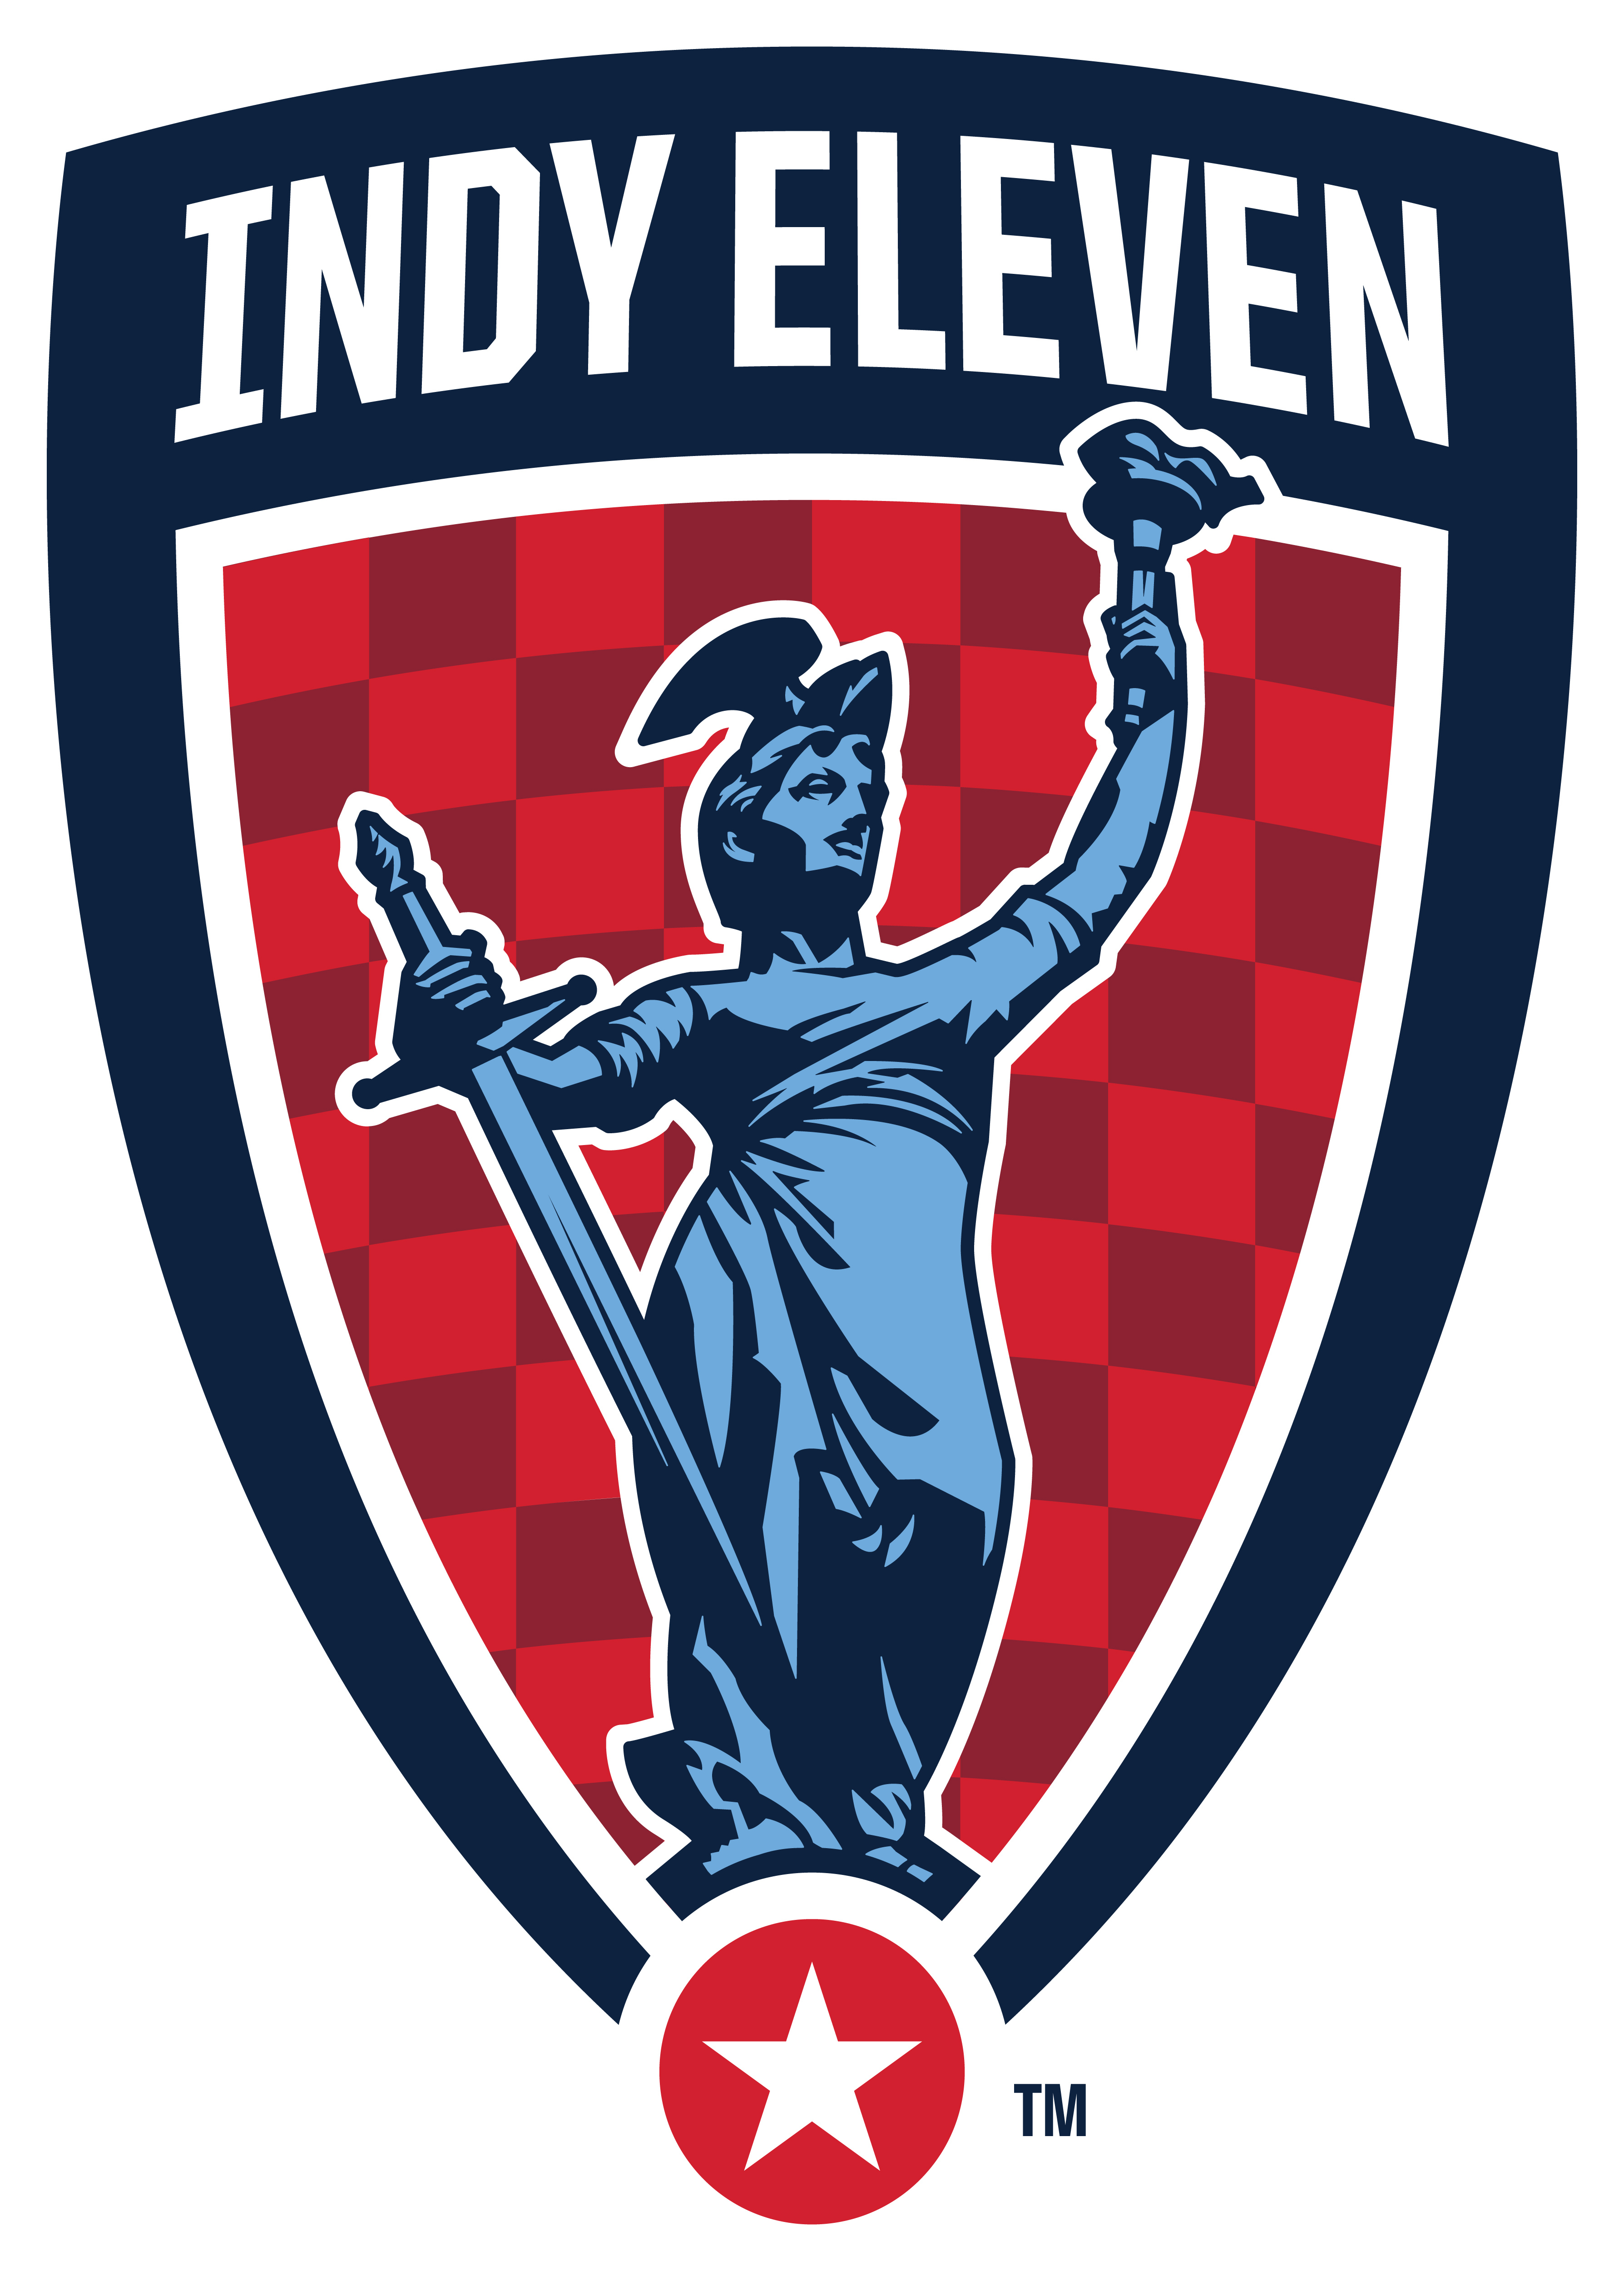 Indy Eleven logo (opens in new window)